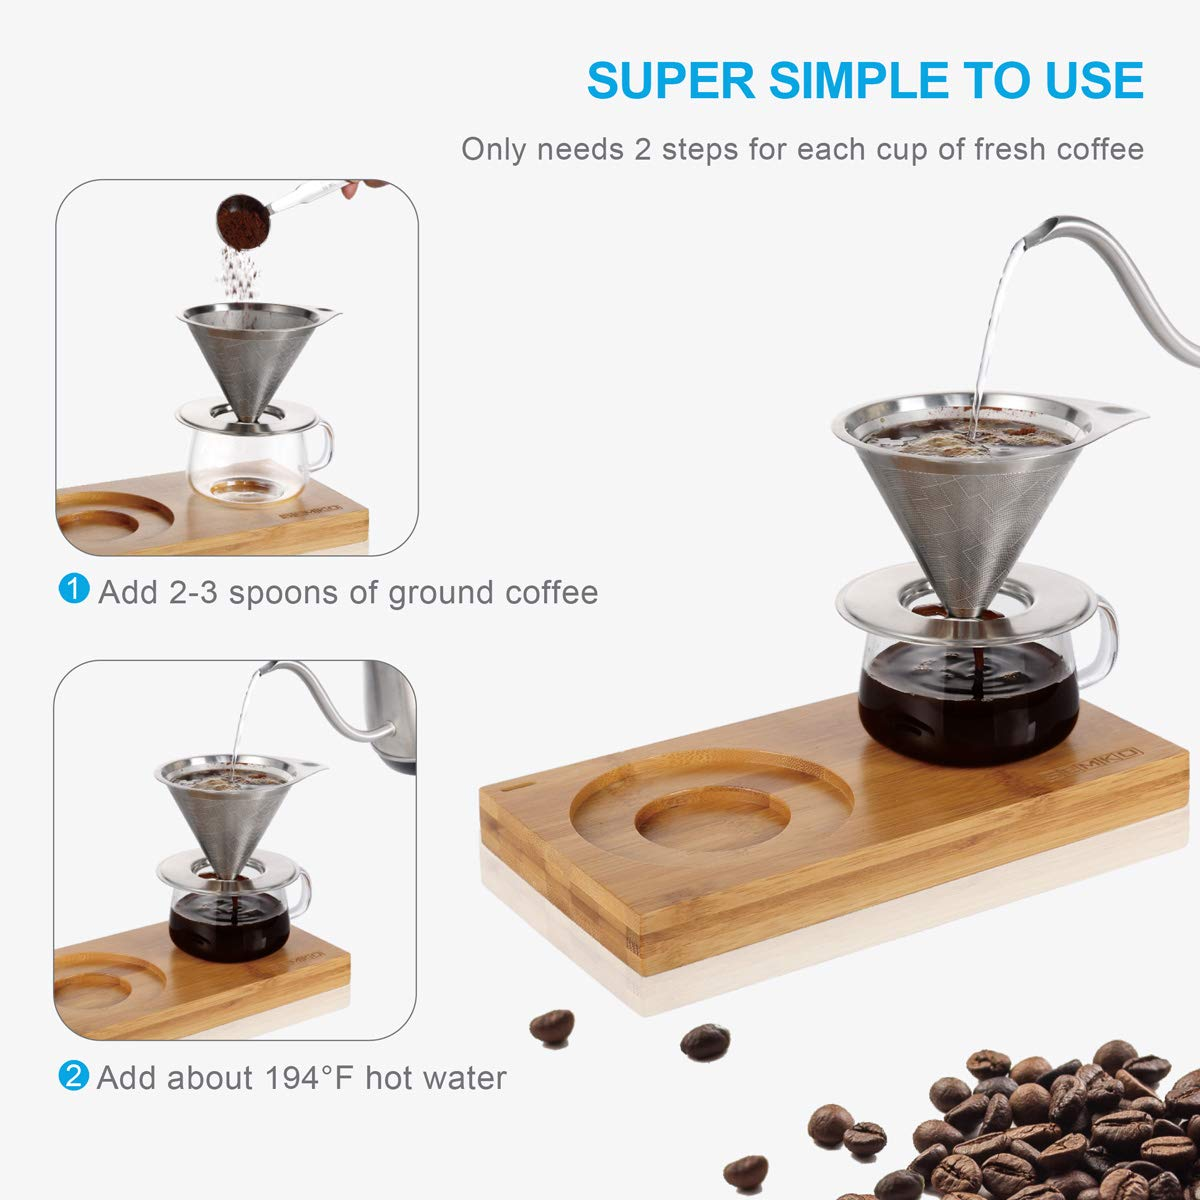 4 pcs/set, Single Serve Coffee Maker, Stainless Steel Coffee Dripper, Pour Over Coffee Maker, One Cup Coffee Maker Set, 8 oz Coffee Cup, Convenient Compact Dishwasher Safe Paperless Gift-ready Package by SEMKO (Image #3)